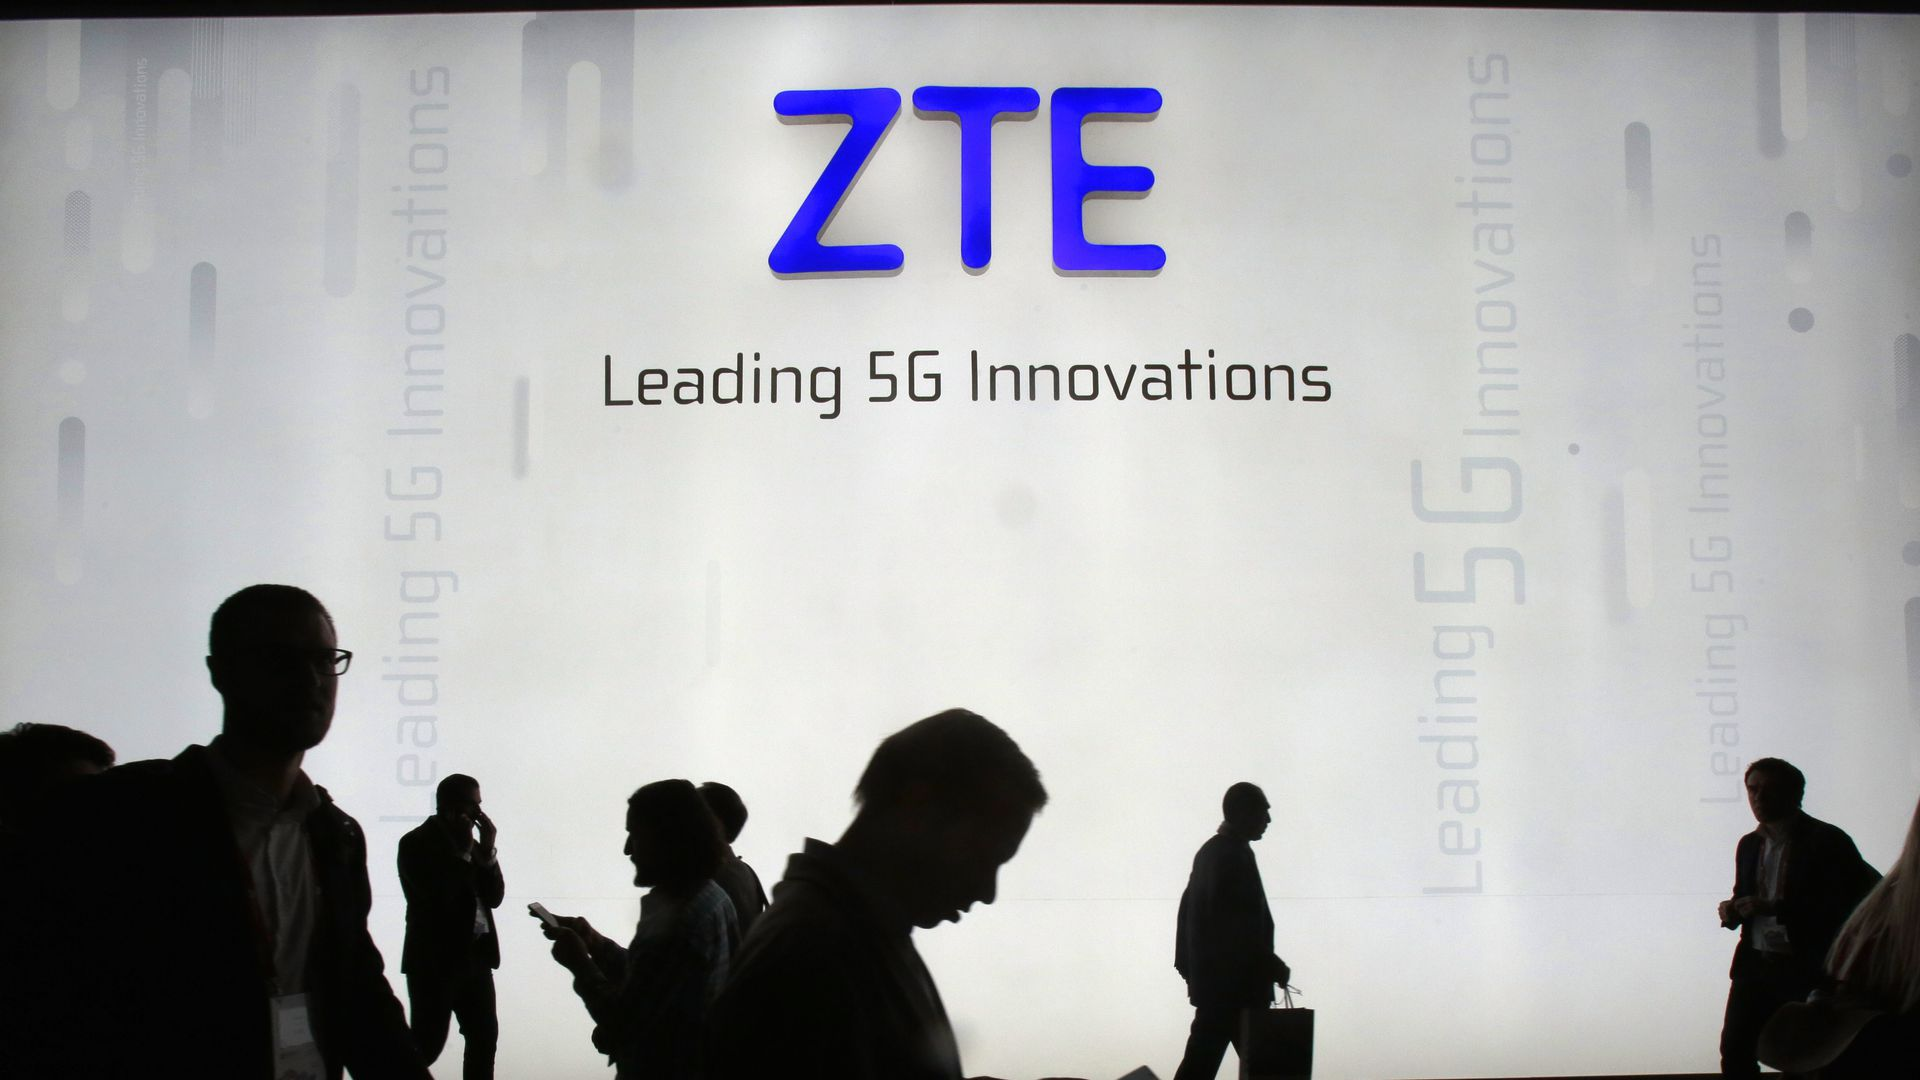 ZTE logo on wall with shadowy human figures below